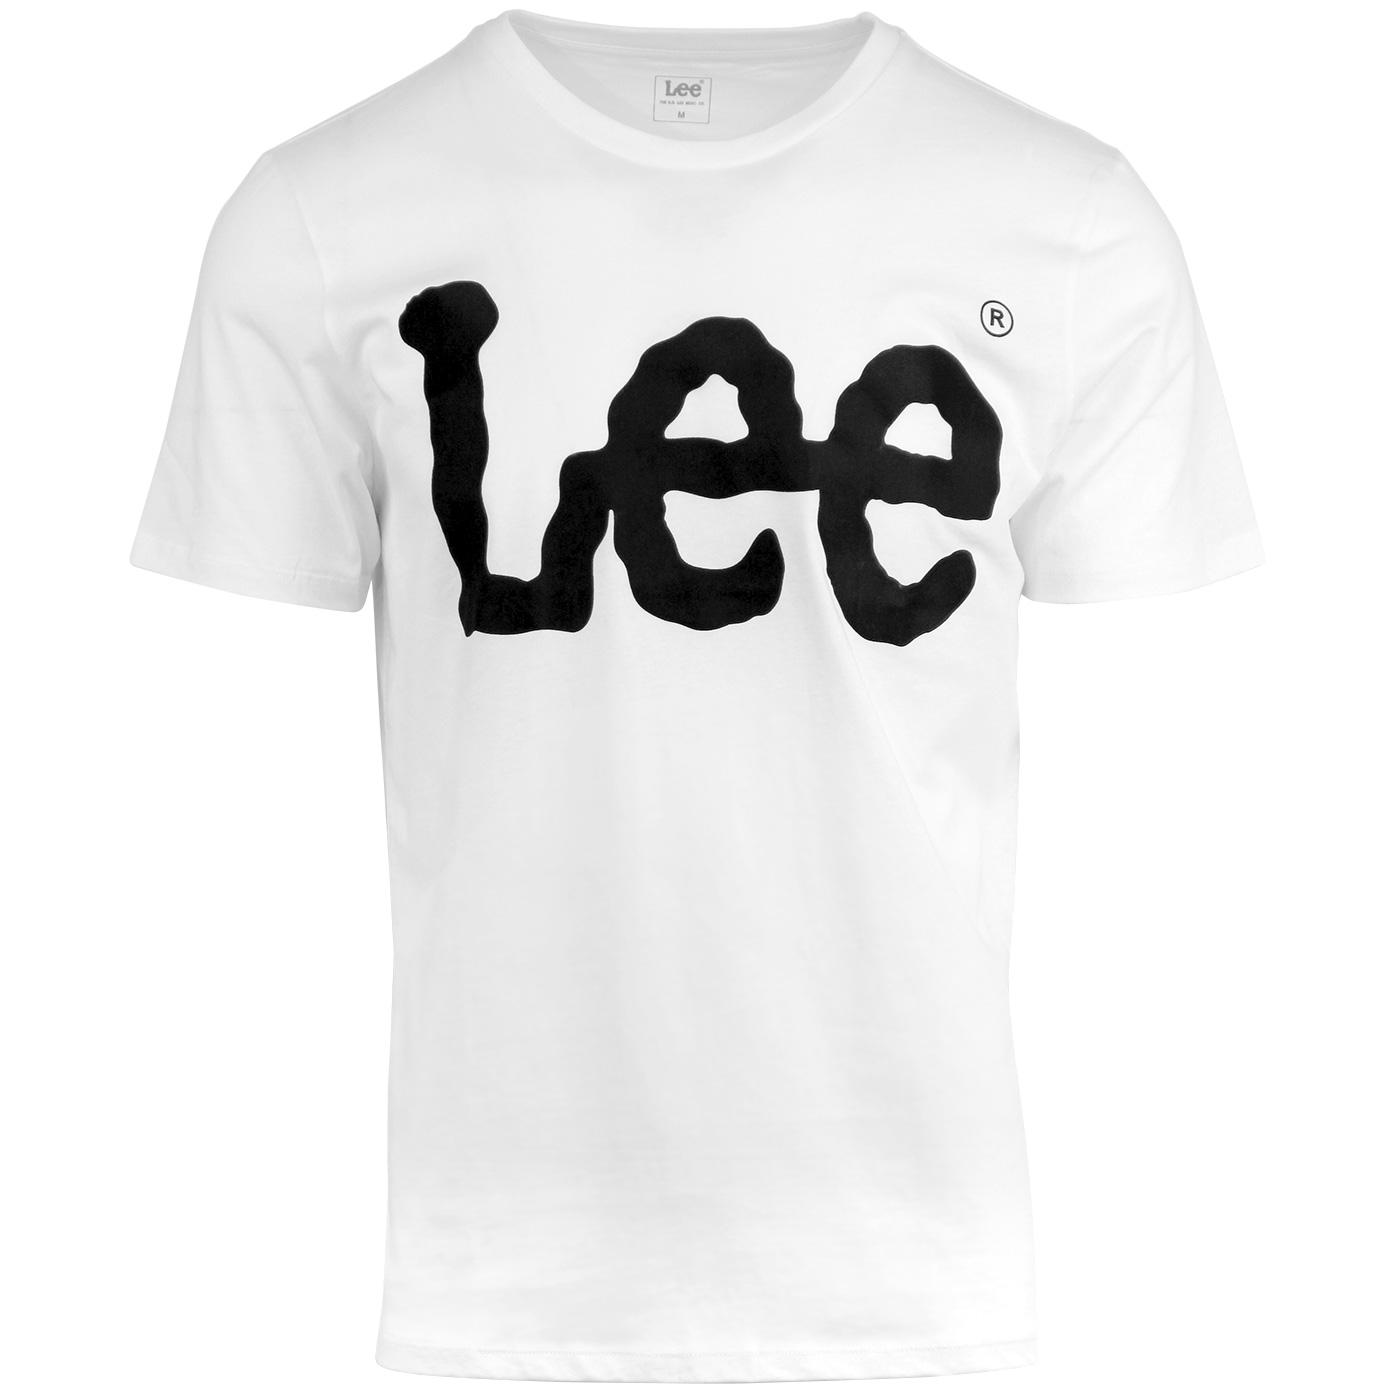 LEE Retro 90s Oversized 'Wobbly Lee' Logo T-shirt